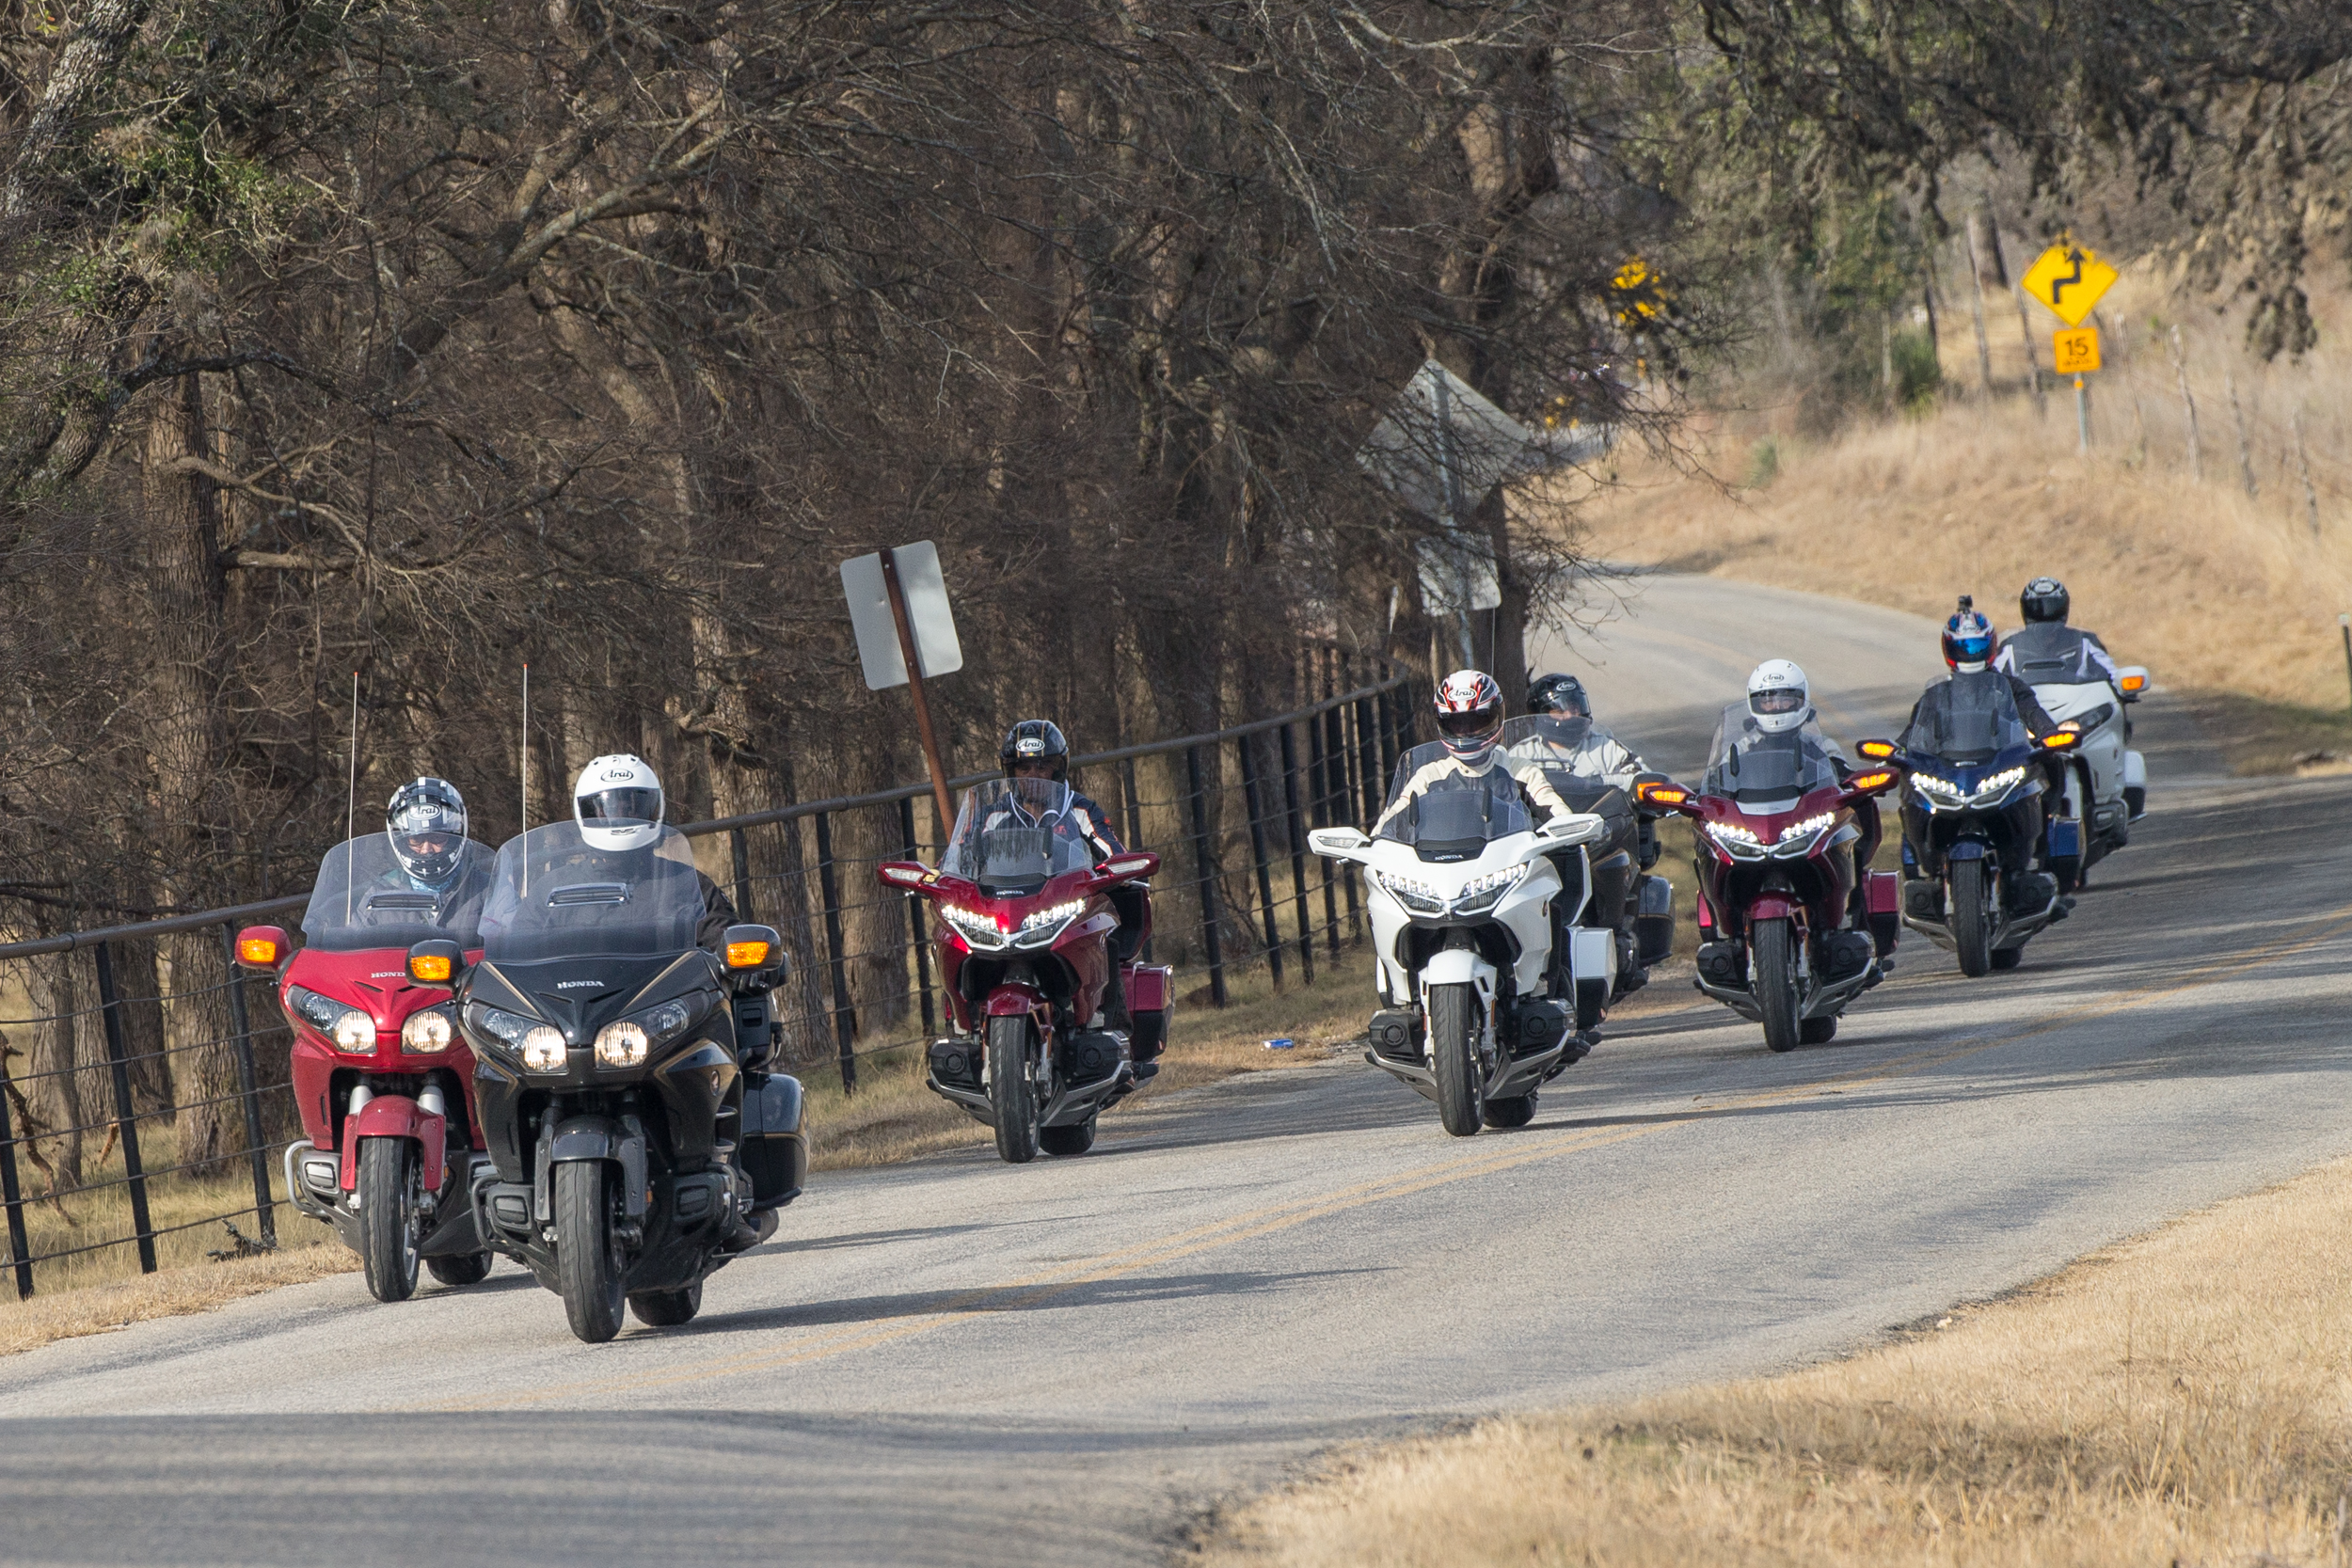 For the media ride event, we created a route in Texas Hill Country, whose famous roads provided opportunities to showcase the Gold Wing's sporty performance.  Image: Kevin Wing